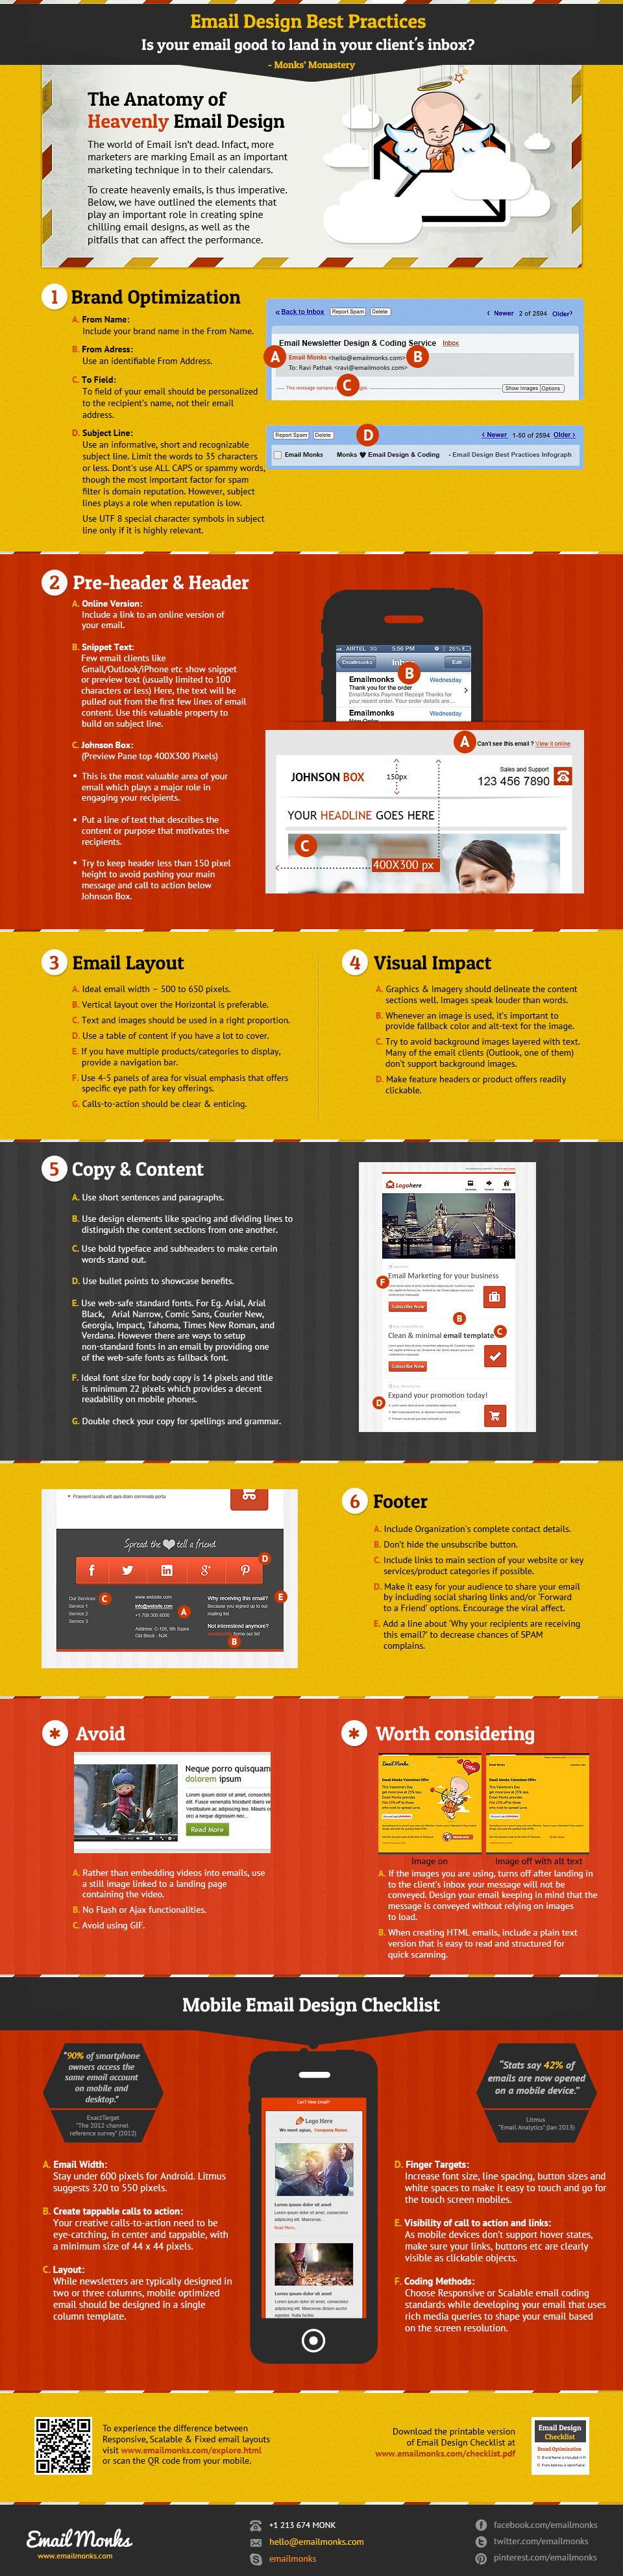 Email Newsletter Design Best Practises Infographic